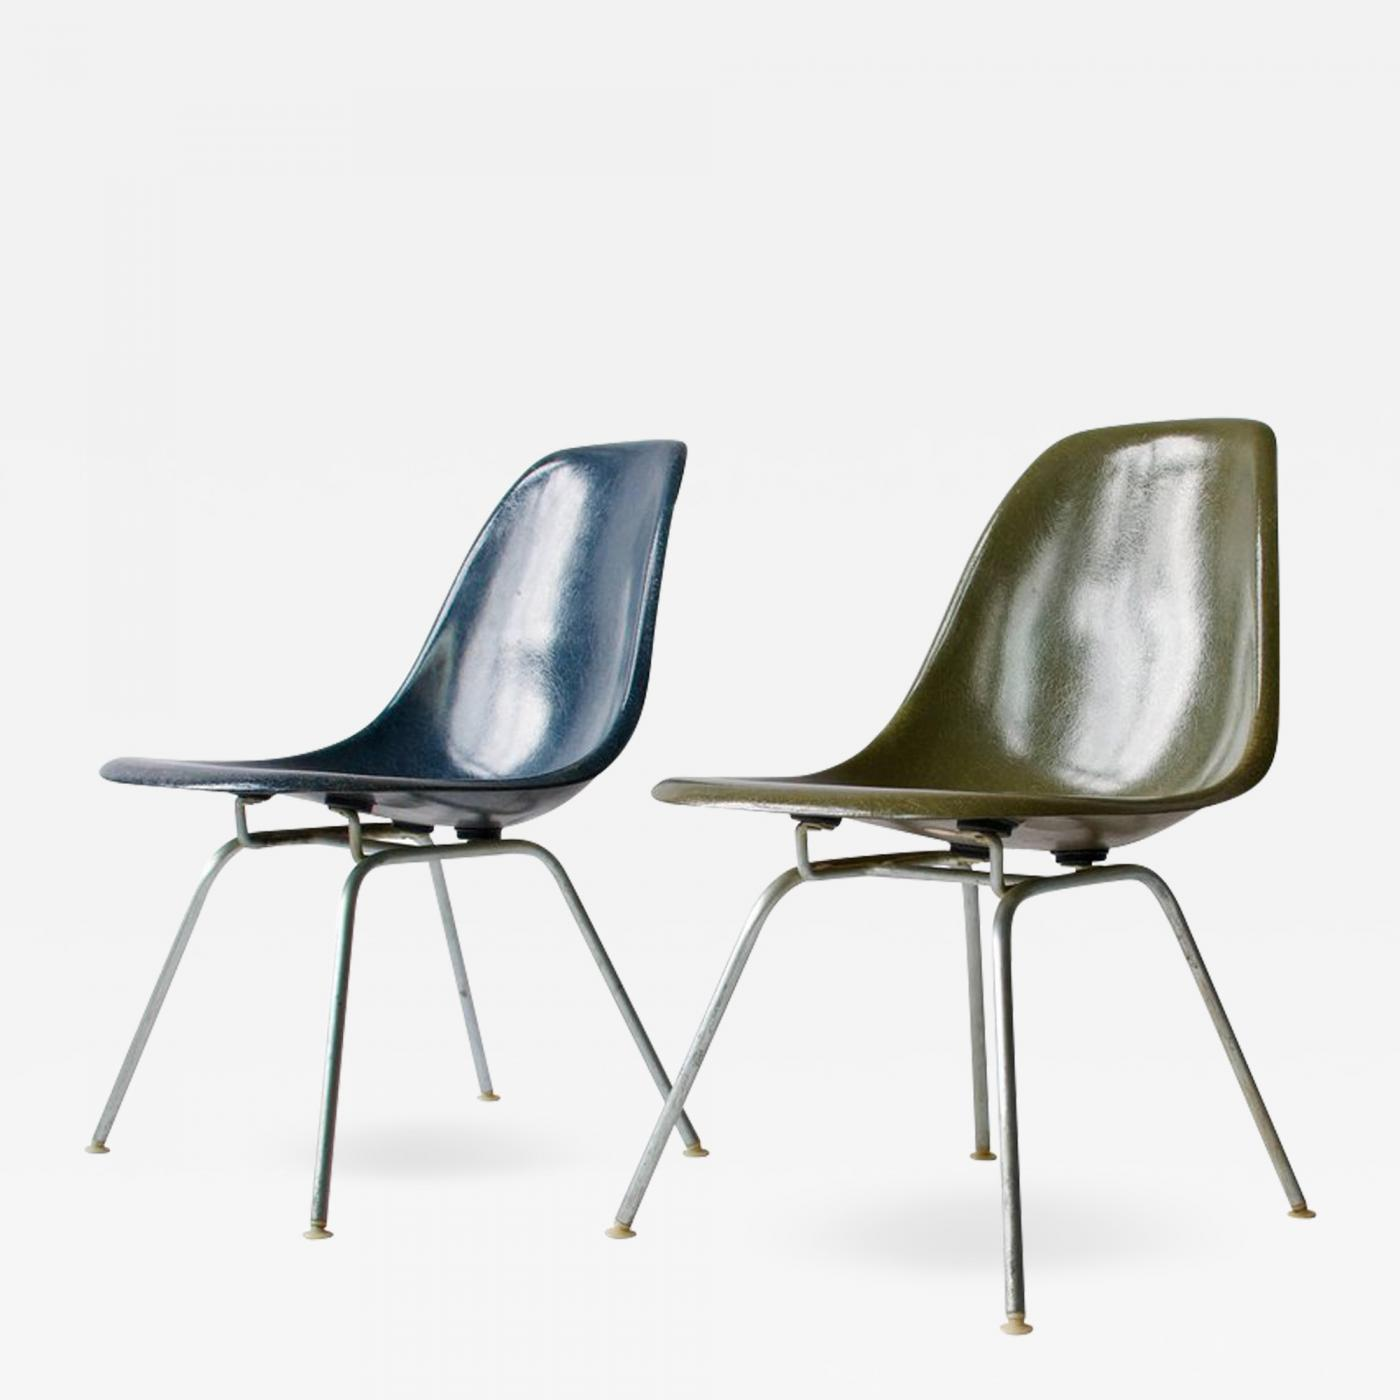 Eames Chair Base Charles Ray Eames Pair Of Charles Eames Shell Chairs With Lounge Base